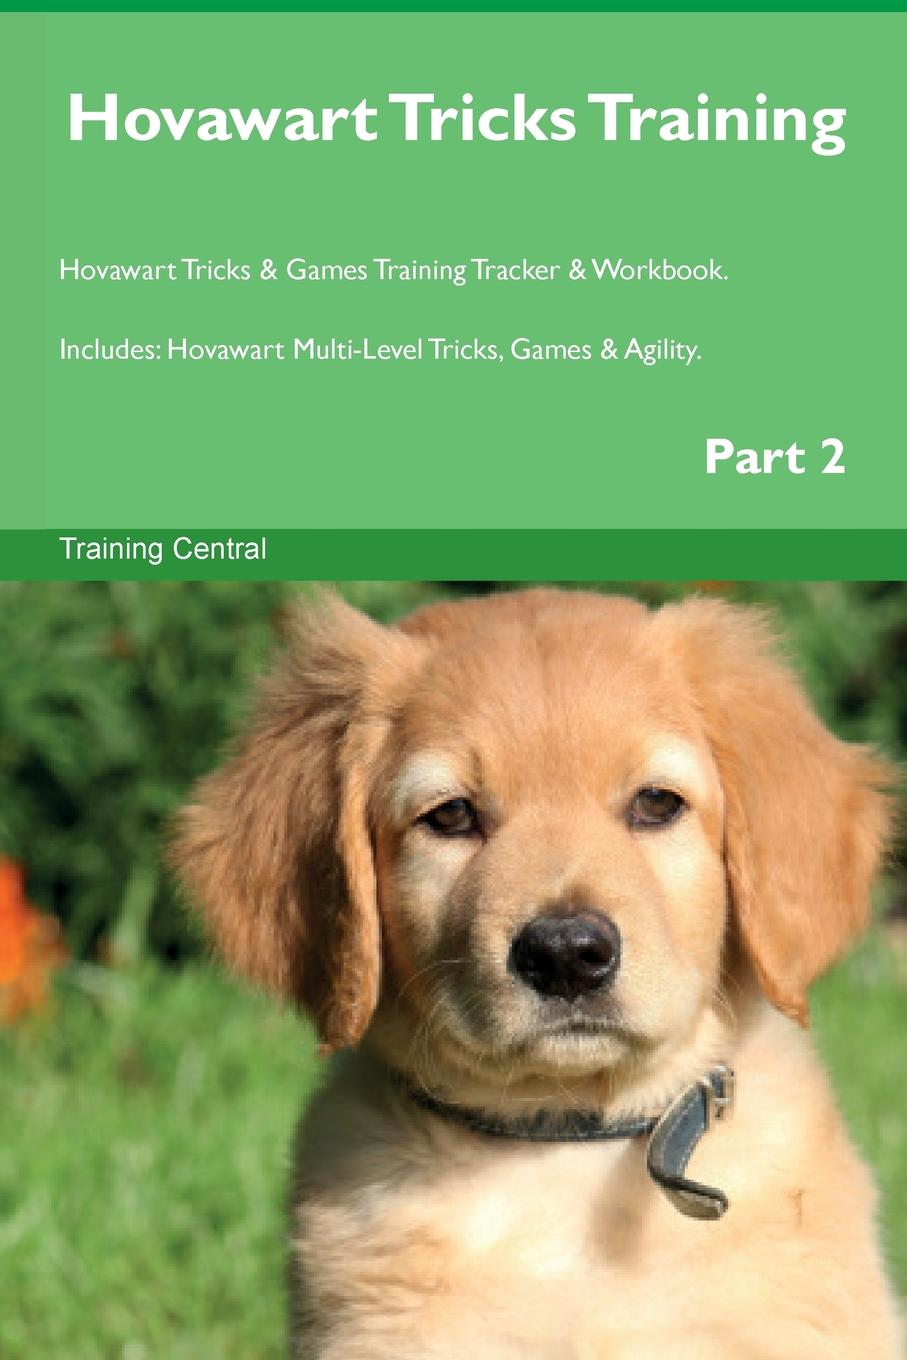 Training Central Hovawart Tricks Training Hovawart Tricks . Games Training Tracker . Workbook. Includes. Hovawart Multi-Level Tricks, Games . Agility. Part 2 this book loves you